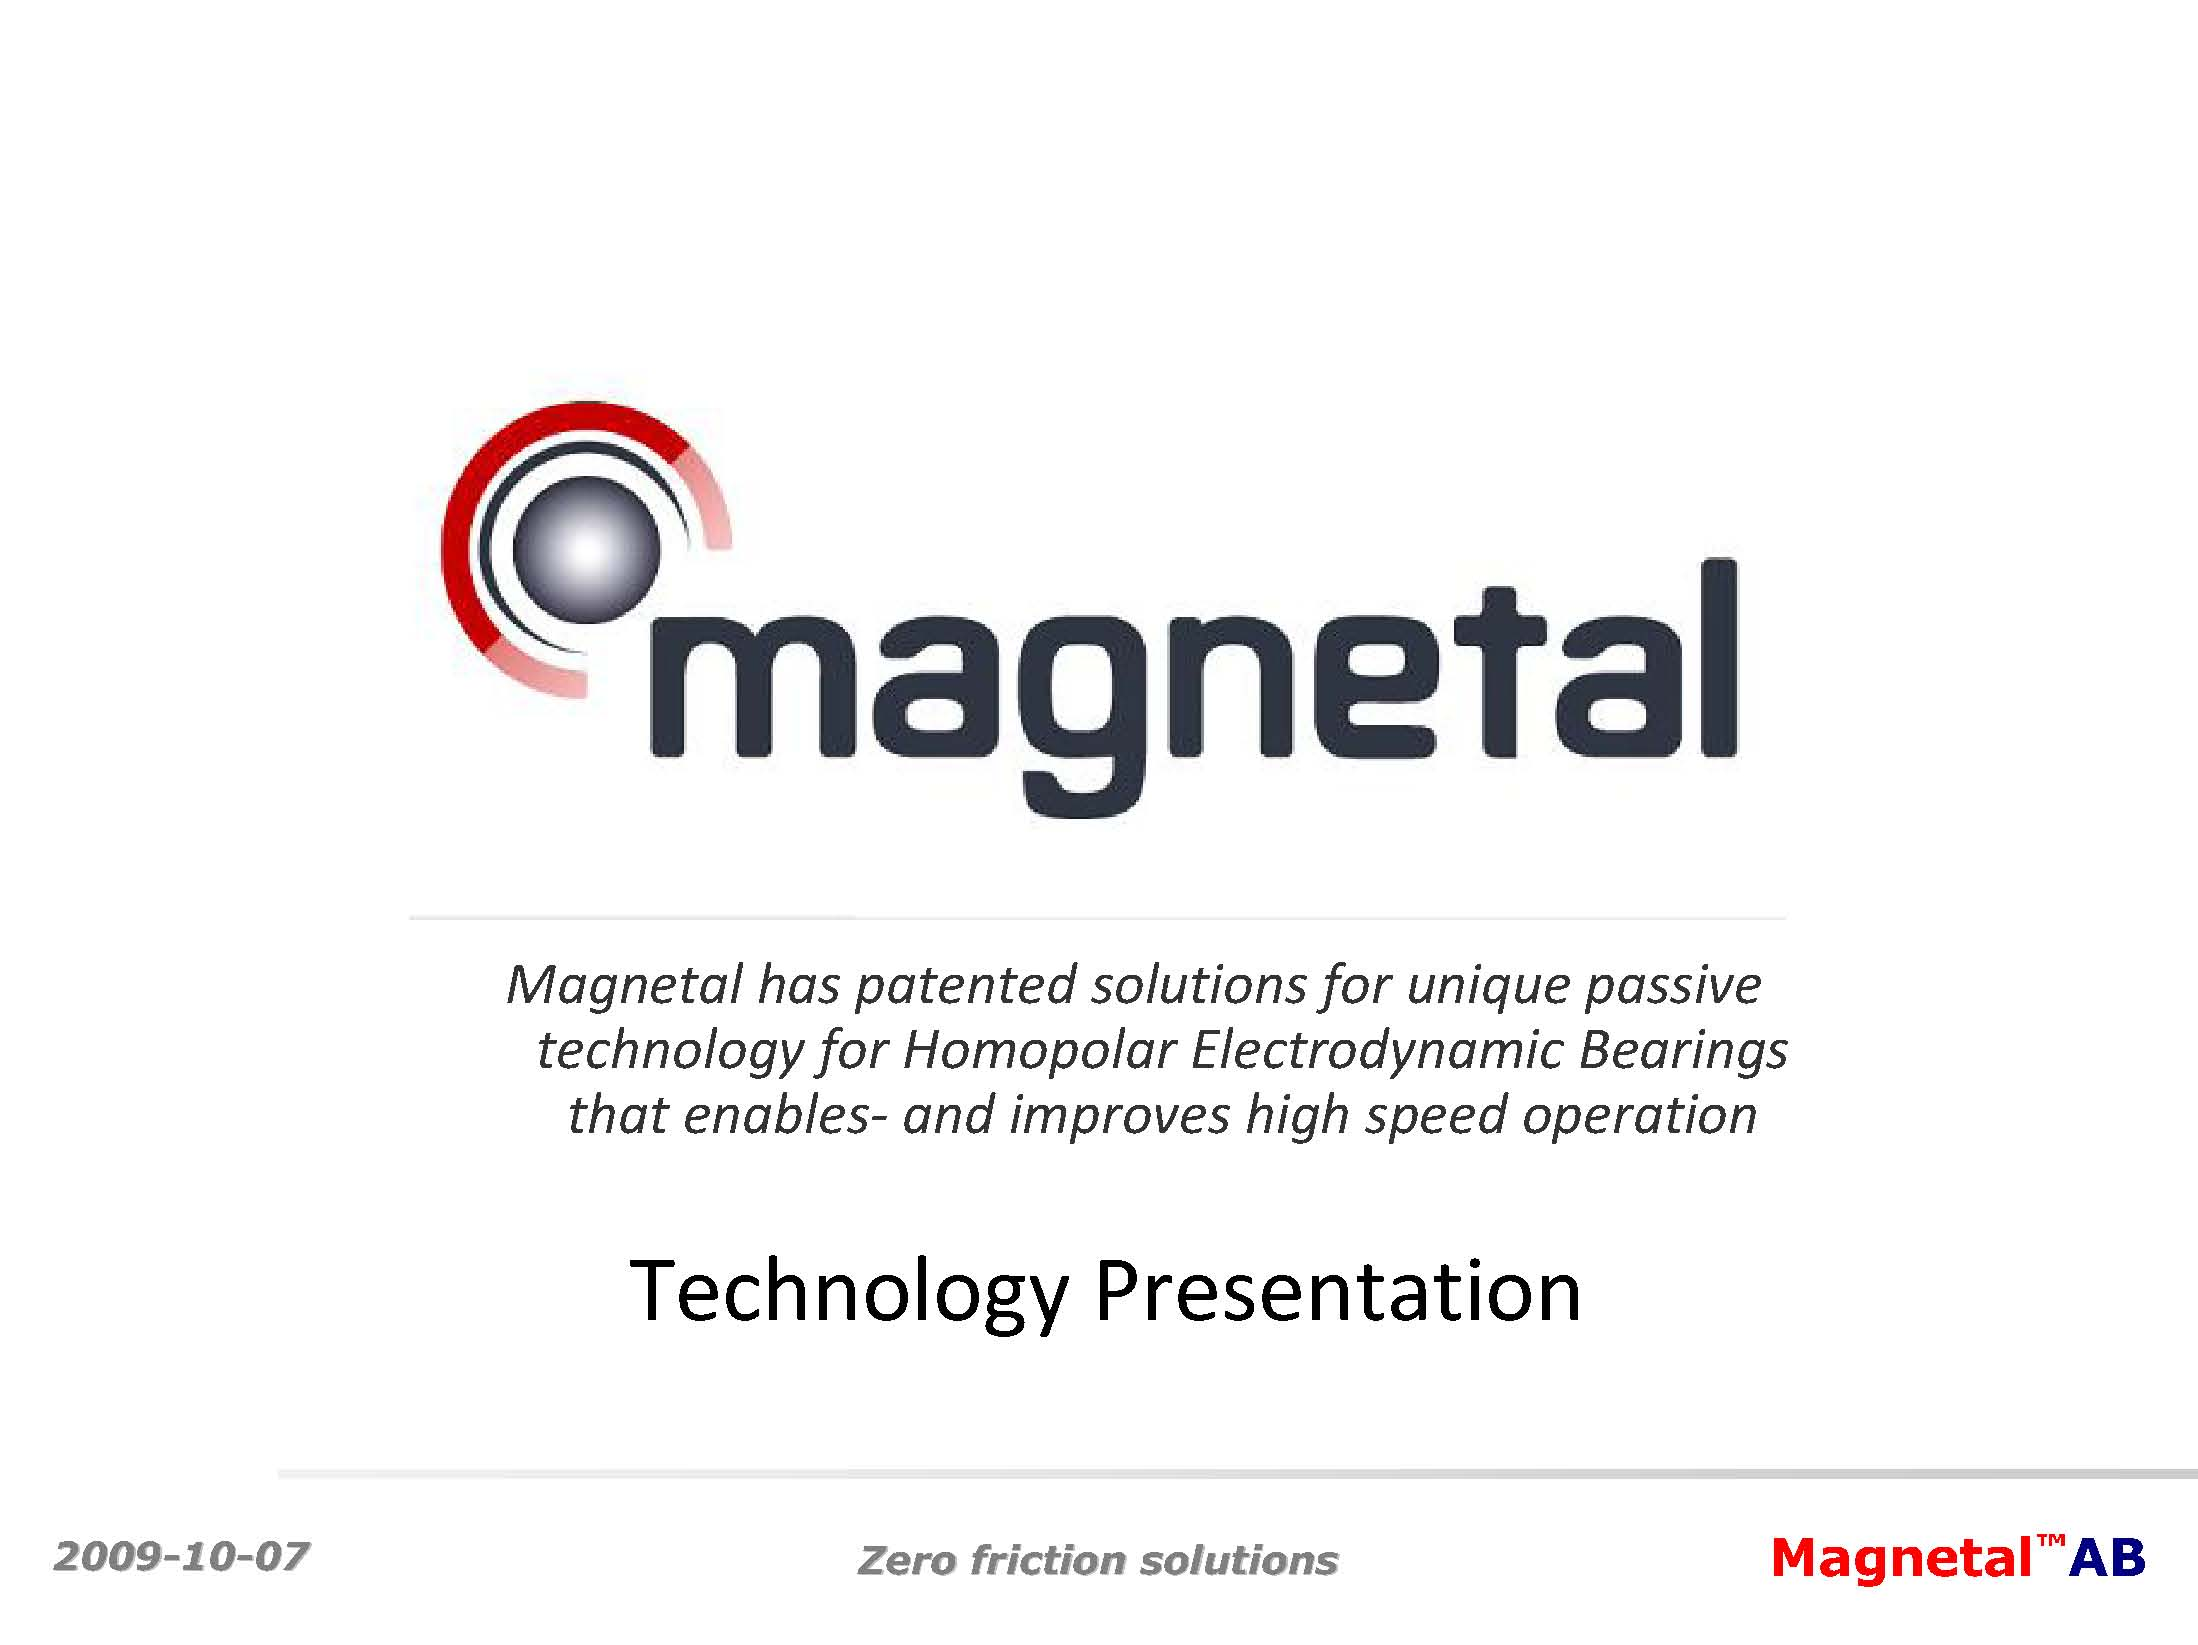 Magnetal Detailed Technology Presentation